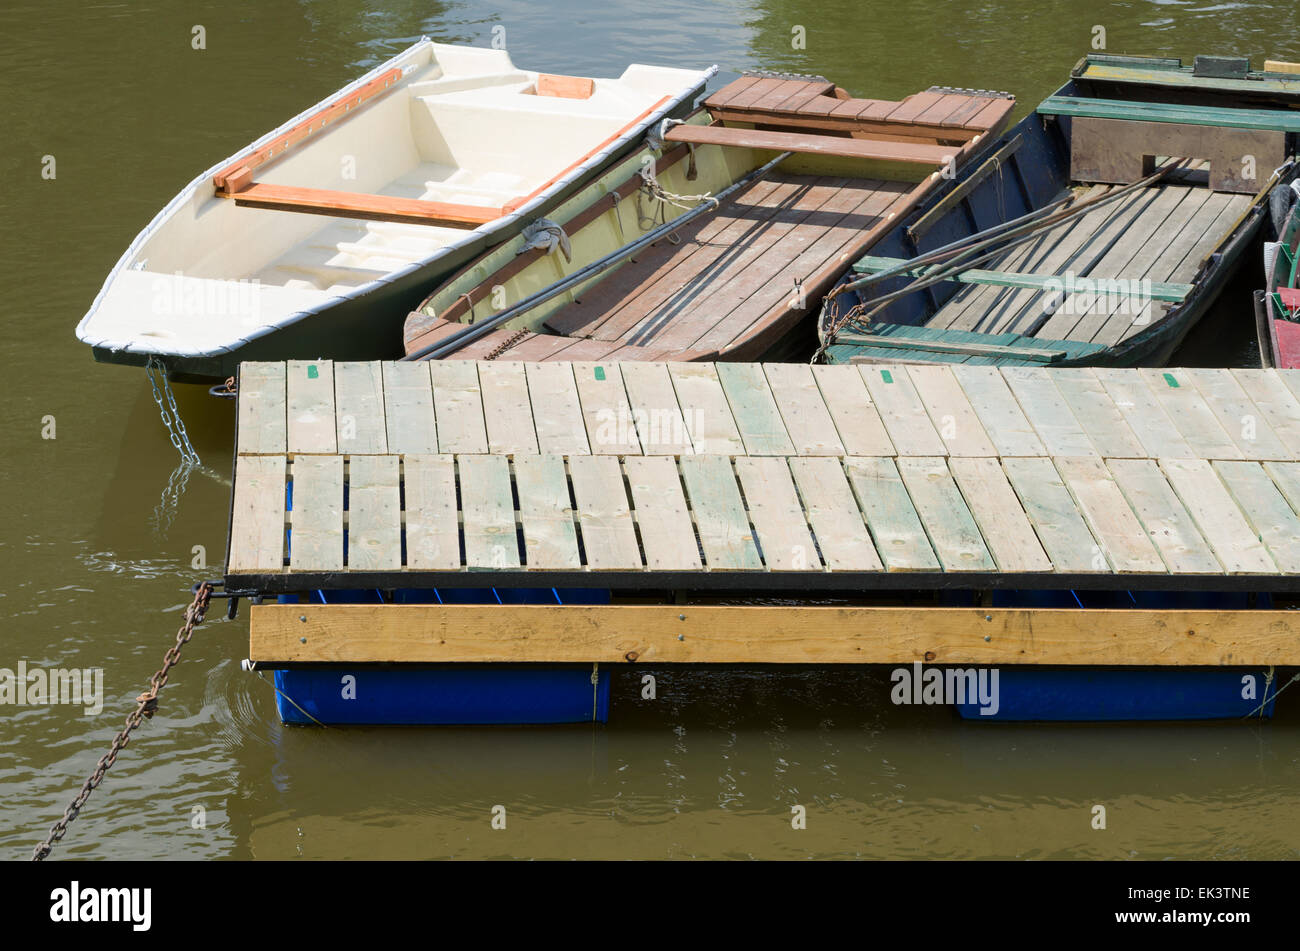 Boats Moored with Iron Chains to Floating Pier on the River - Stock Image